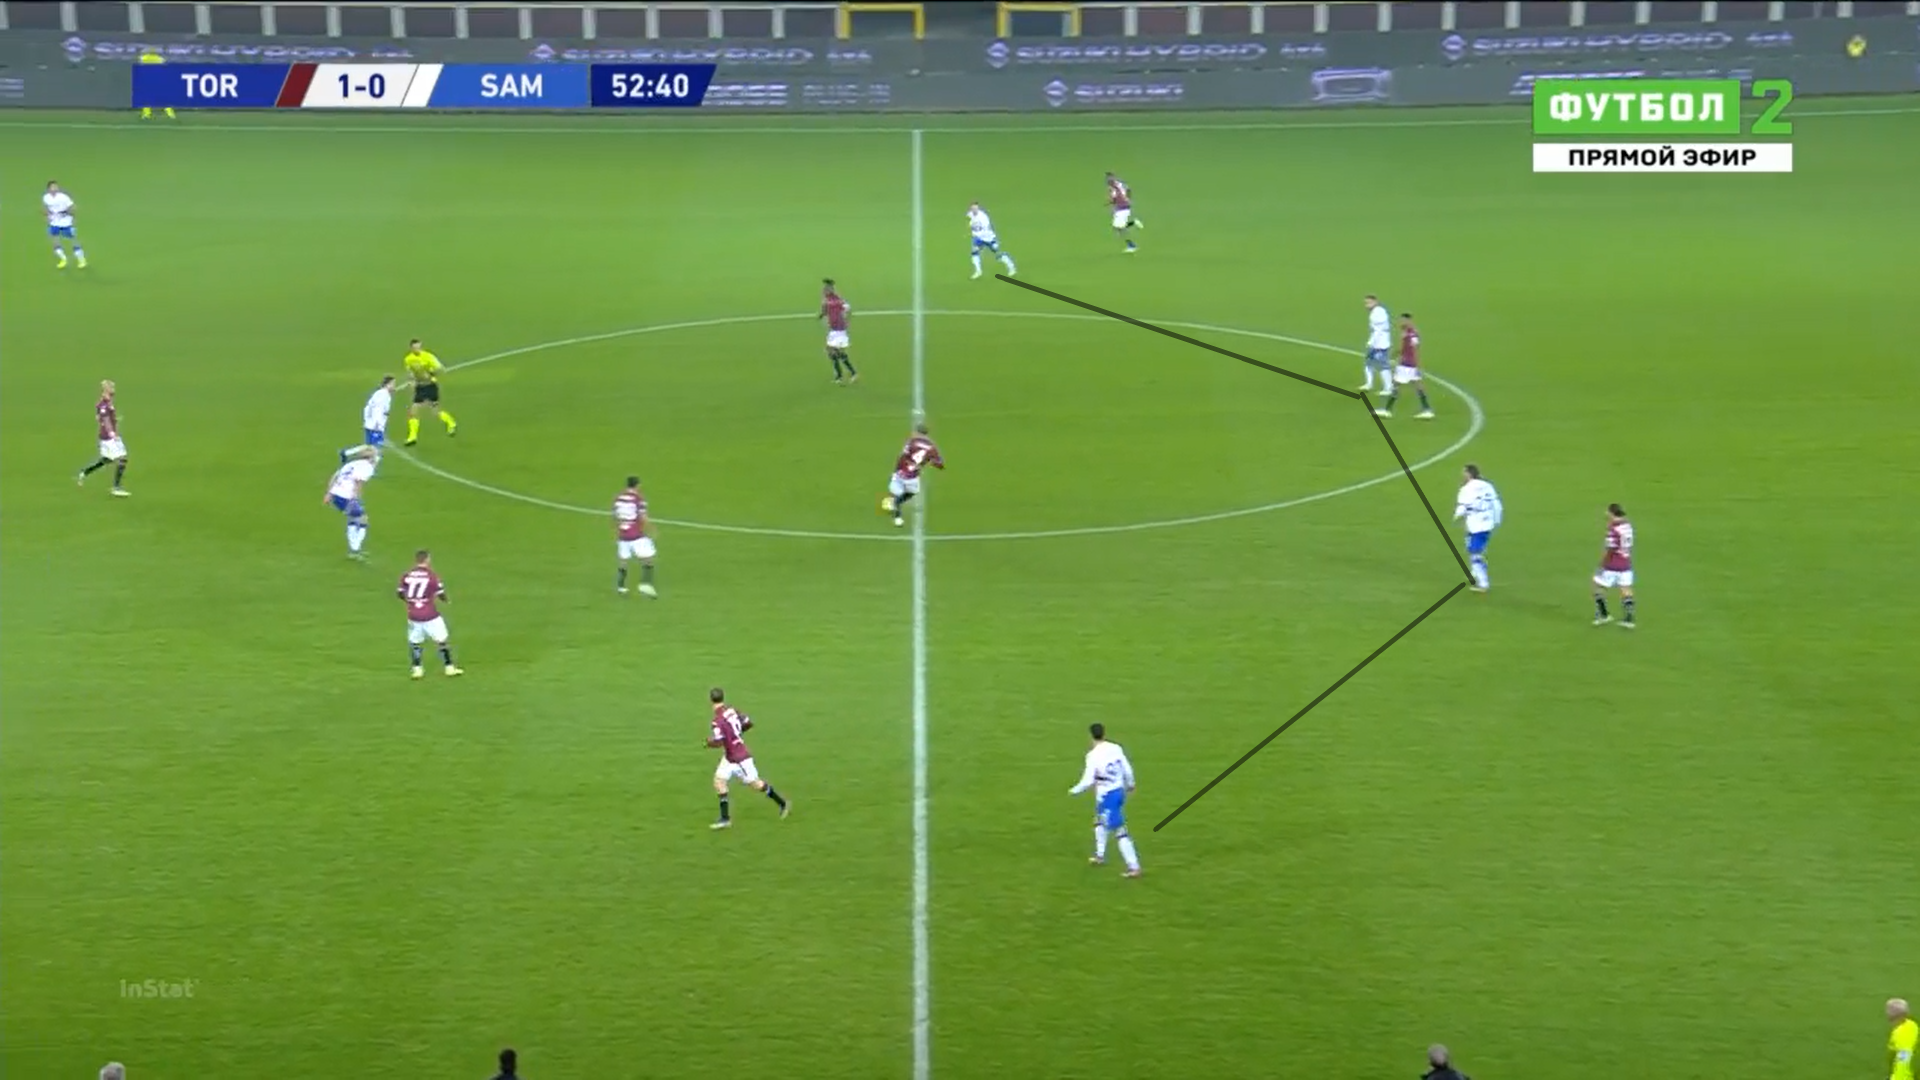 Serie A 2020/21: Torino vs Sampdoria – tactical analysis tactics